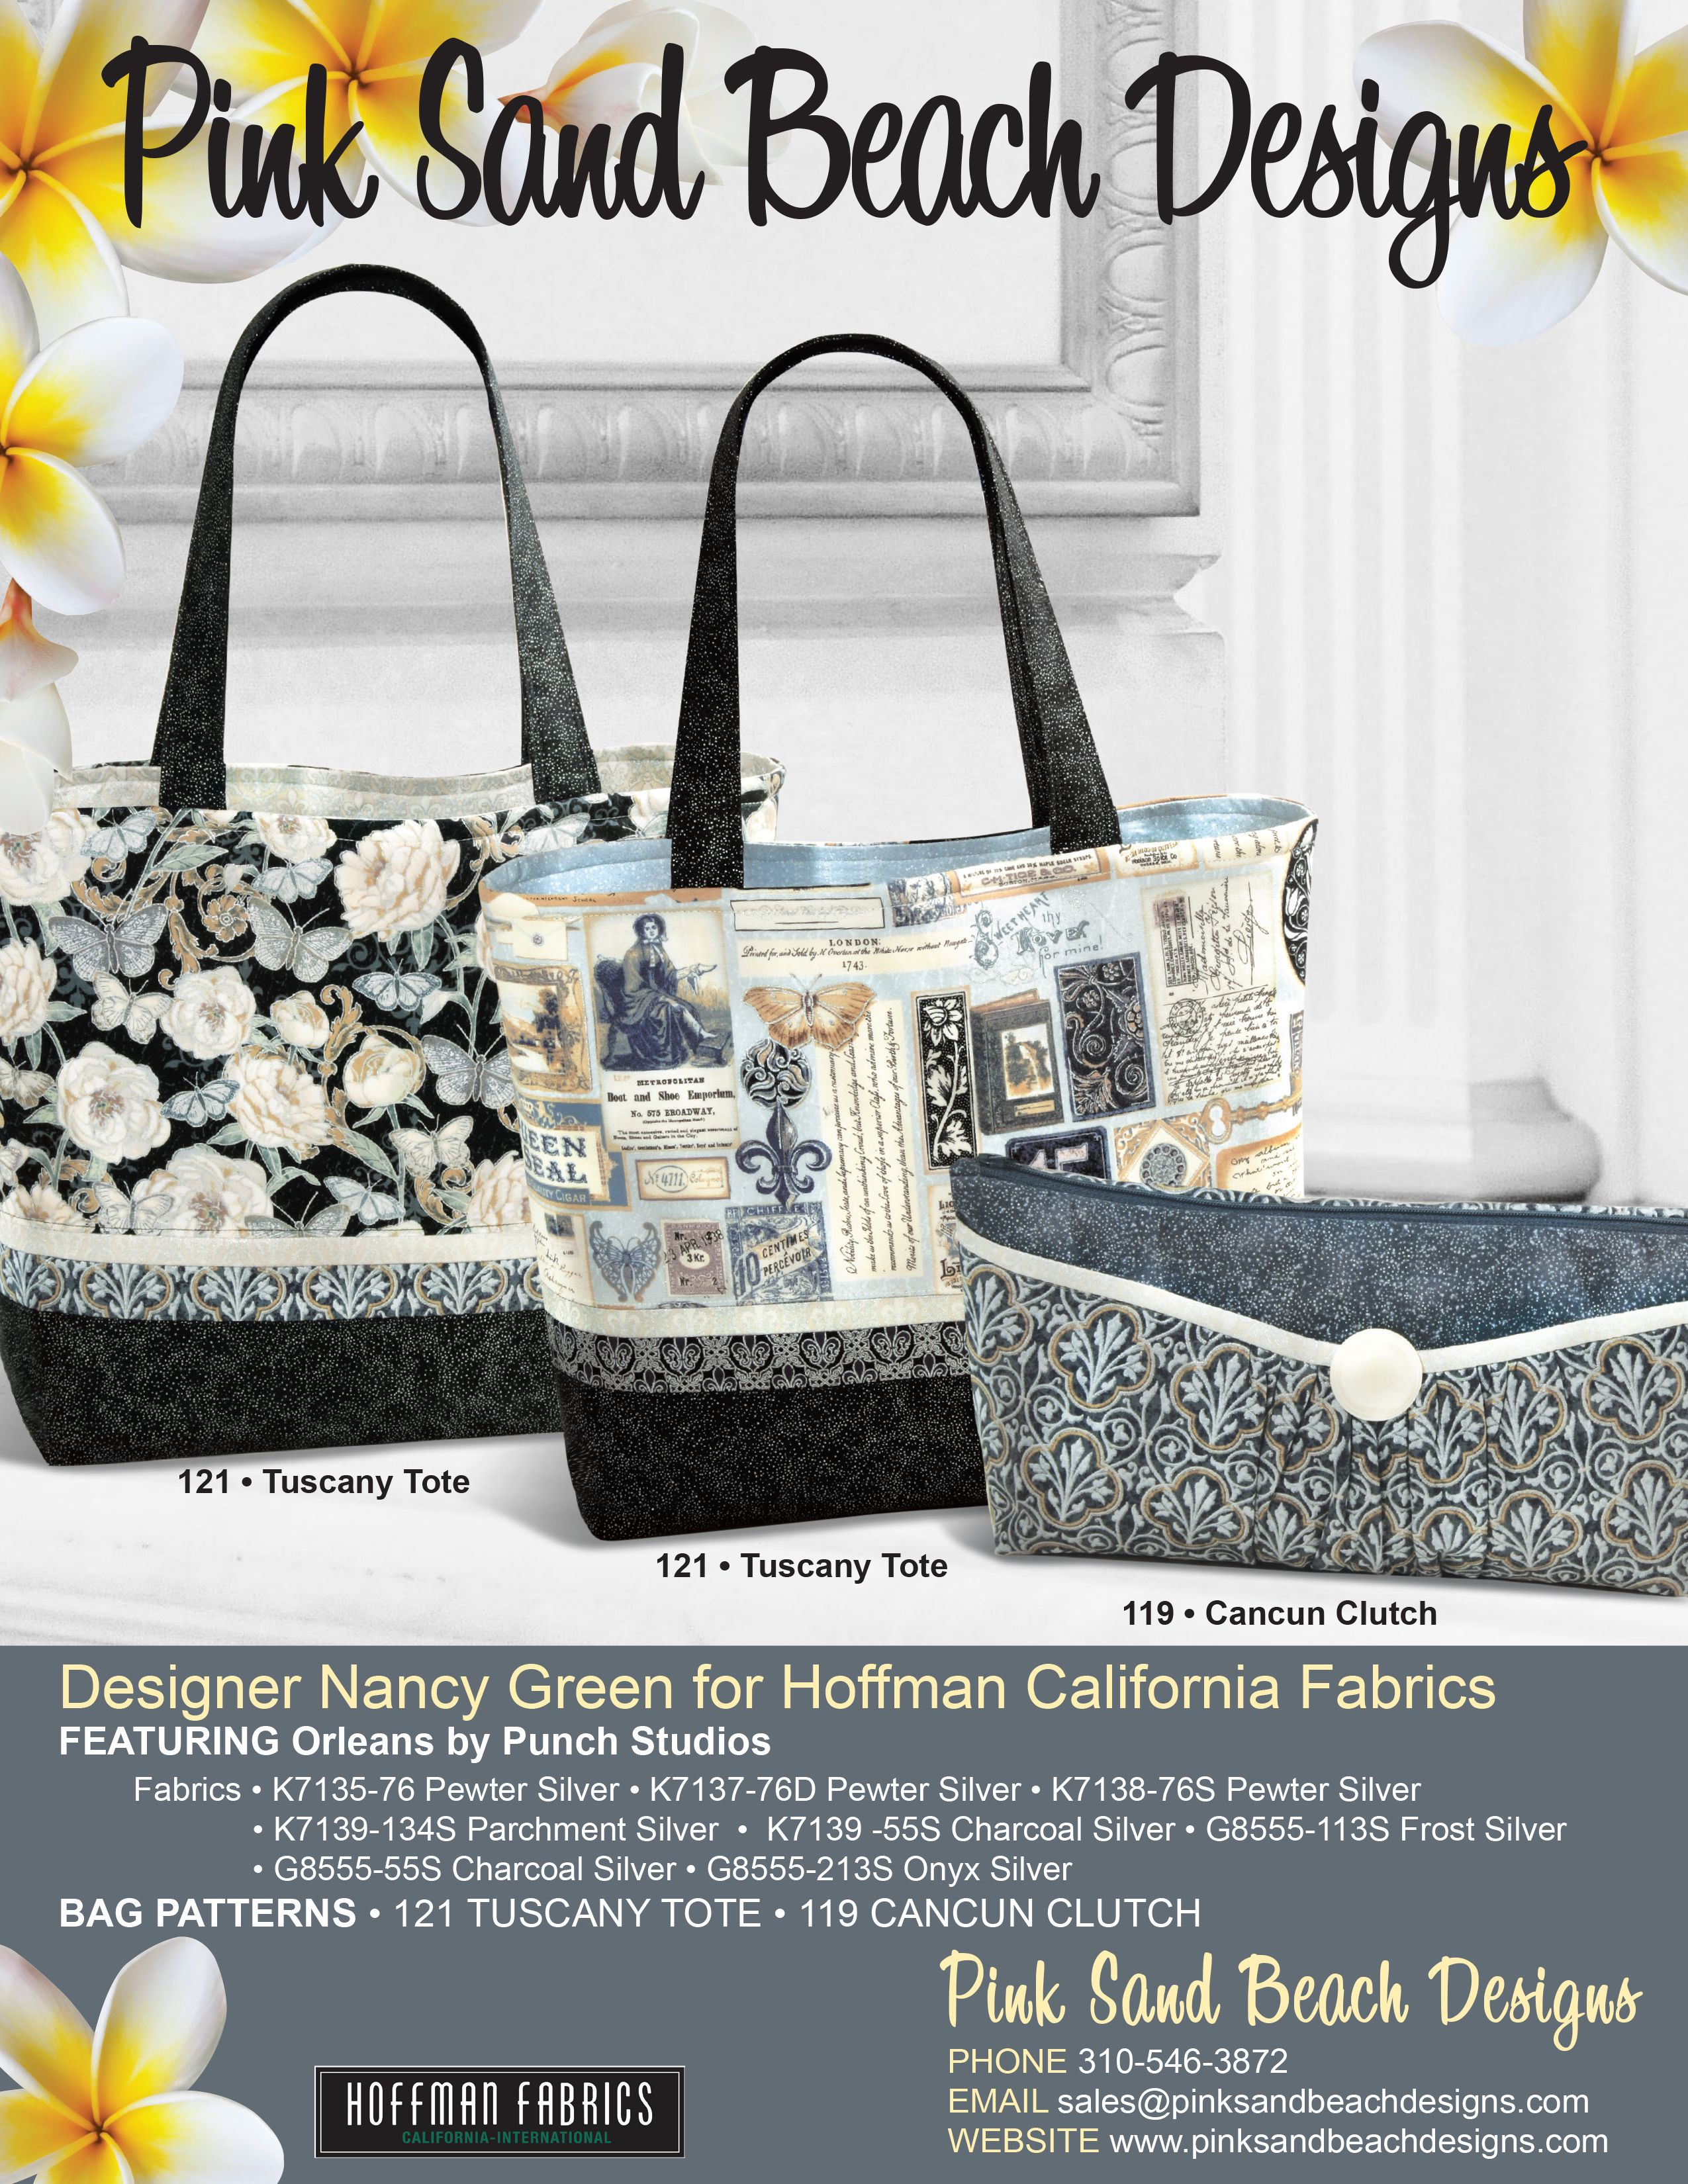 pink sand beach designs purse patterns tuscany tote and cancun clutch featuring orleans by punch